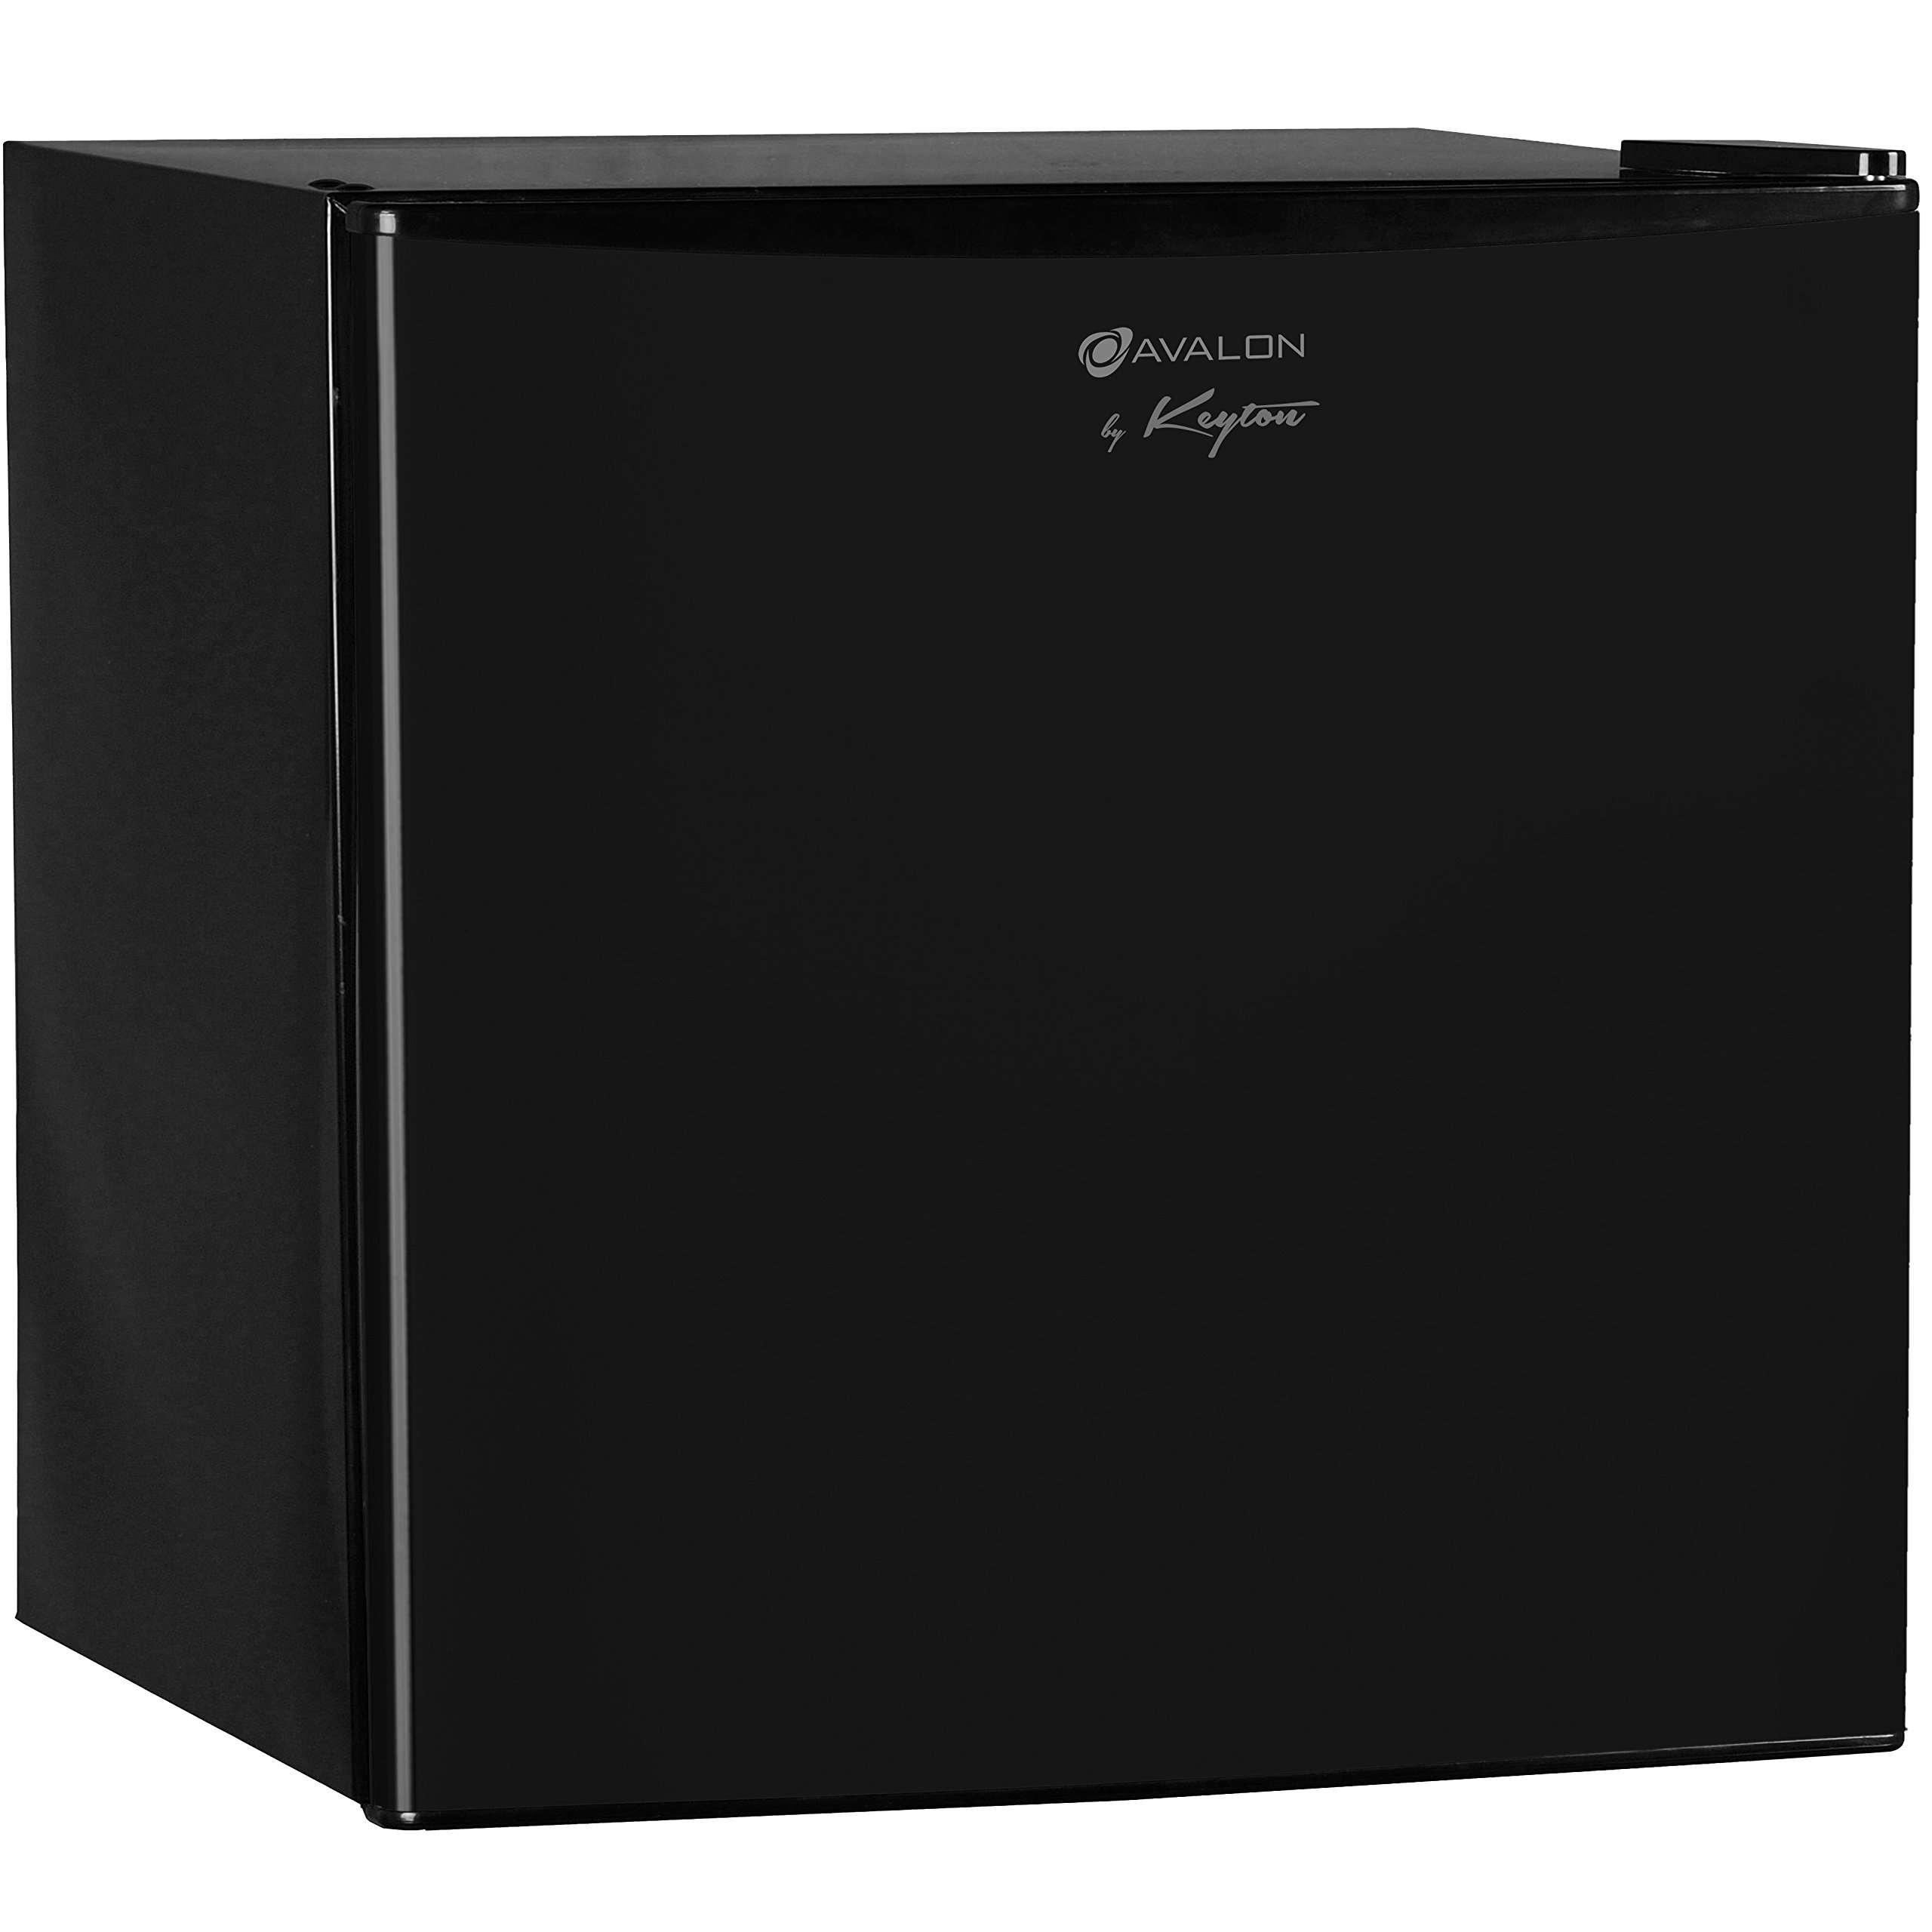 Avalon by Keyton Compact Single Door Refrigerator & Freezer- 1.6 Cubic Feet, Compact, Adjustable Legs, Separate Freezer Compartment & Adjustable Thermostat - UL & Energy Star Certified - Black